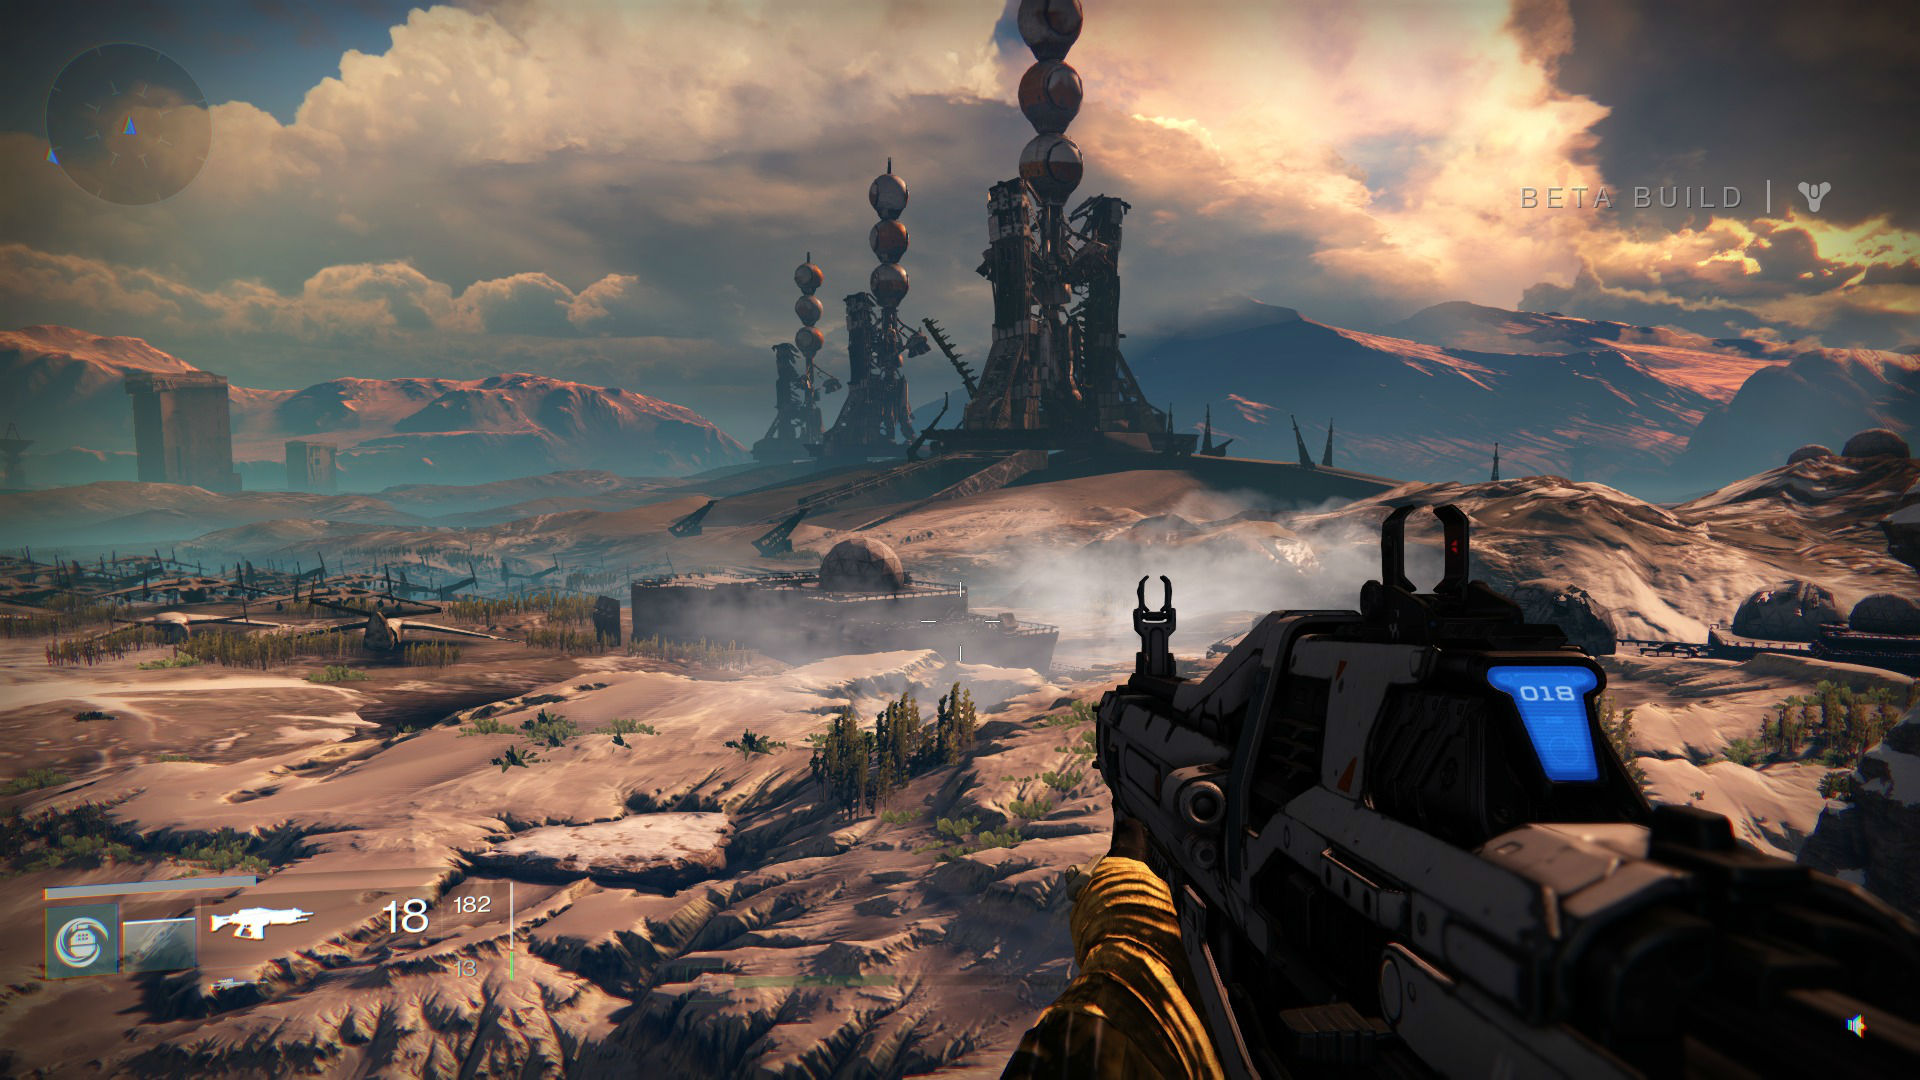 Destiny Dance Gif: Destiny PS4 Review: Looks Epic, Feels Incomplete